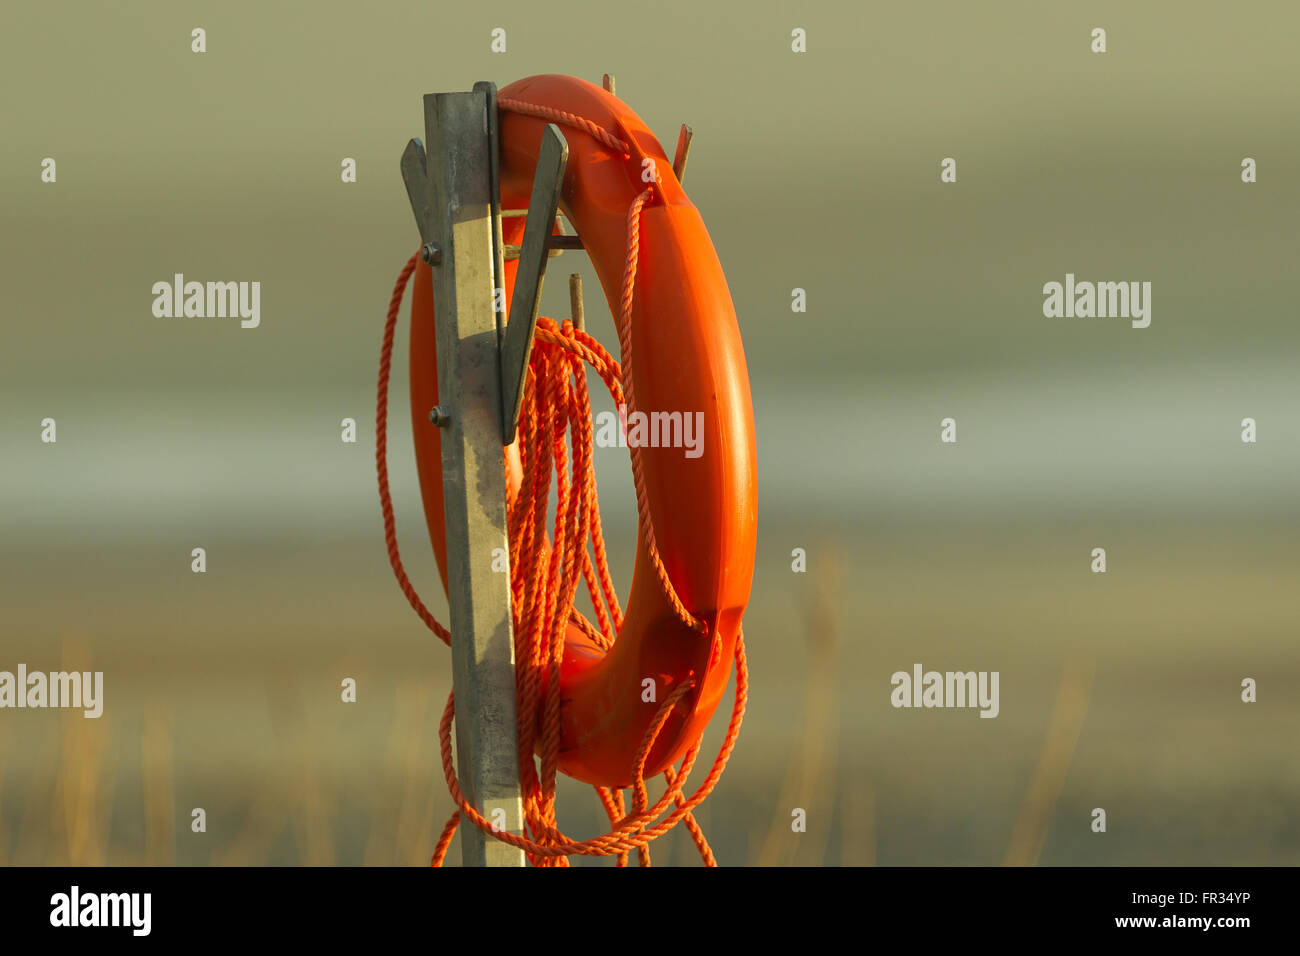 Life buoys, life rings safety equipment orange color - Stock Image